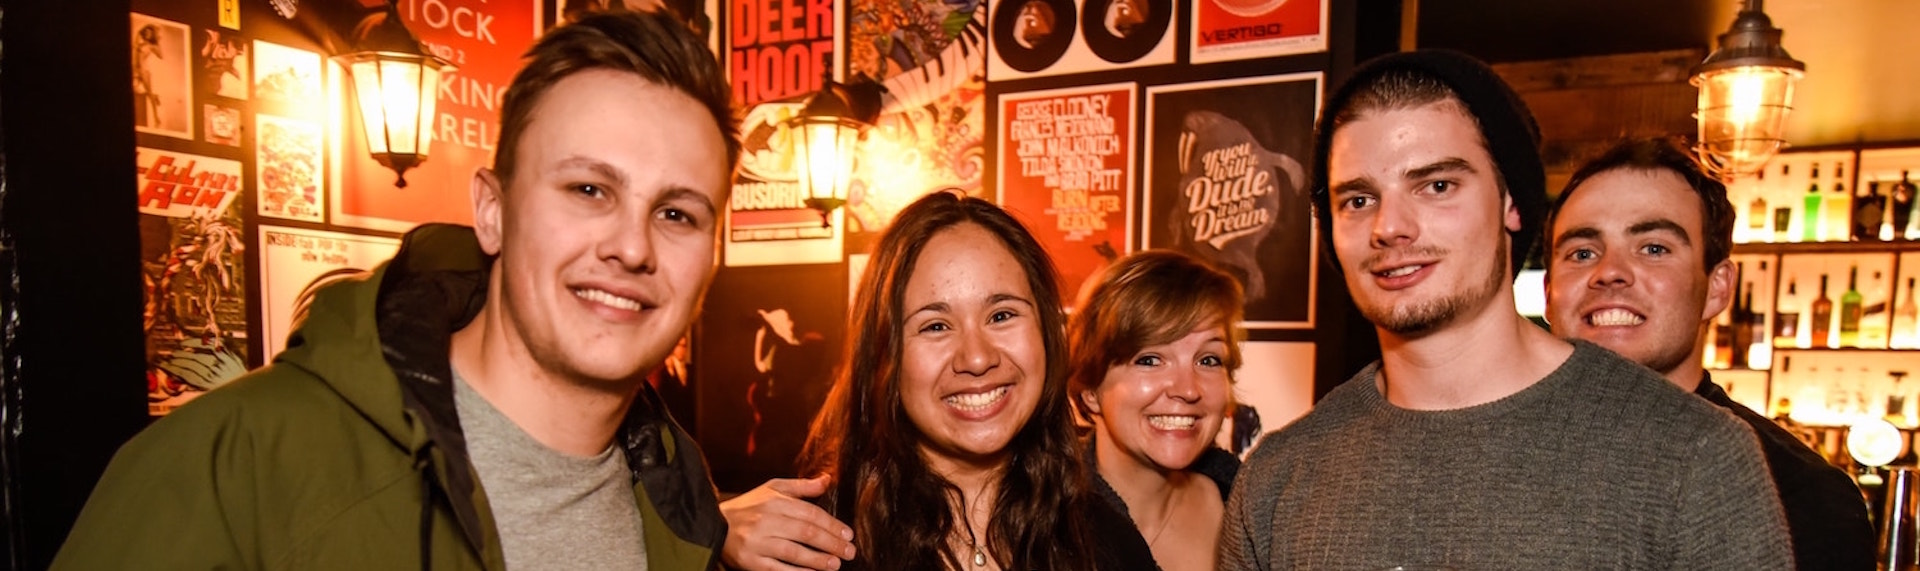 Big Night Out Pub Crawl Queenstown Nightlife Experience